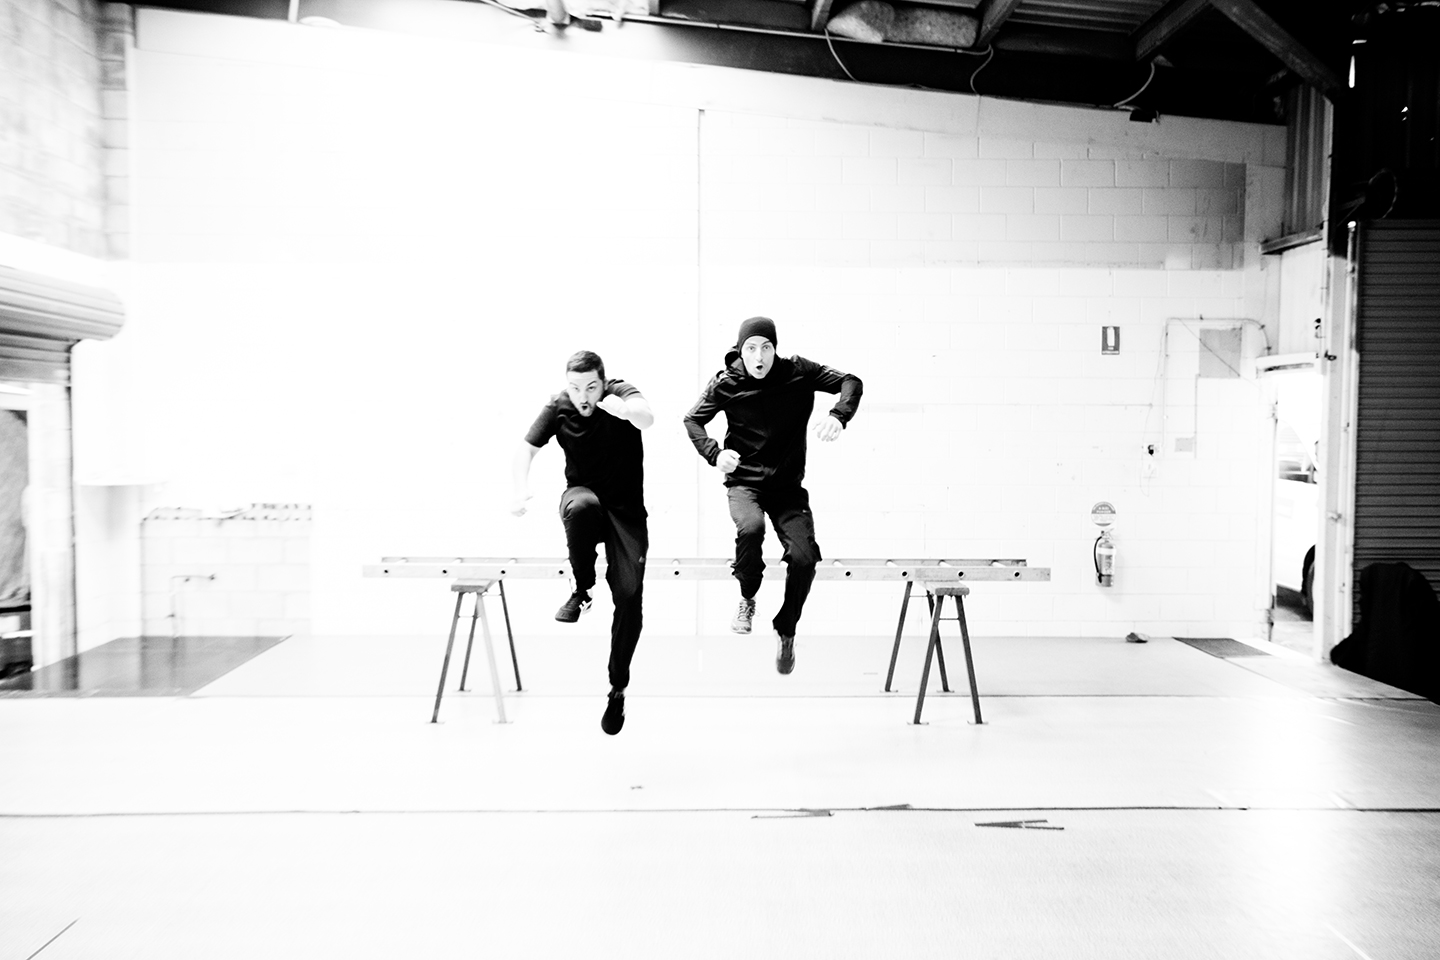 black and white photo of two people in a warehouse jumping at the same time